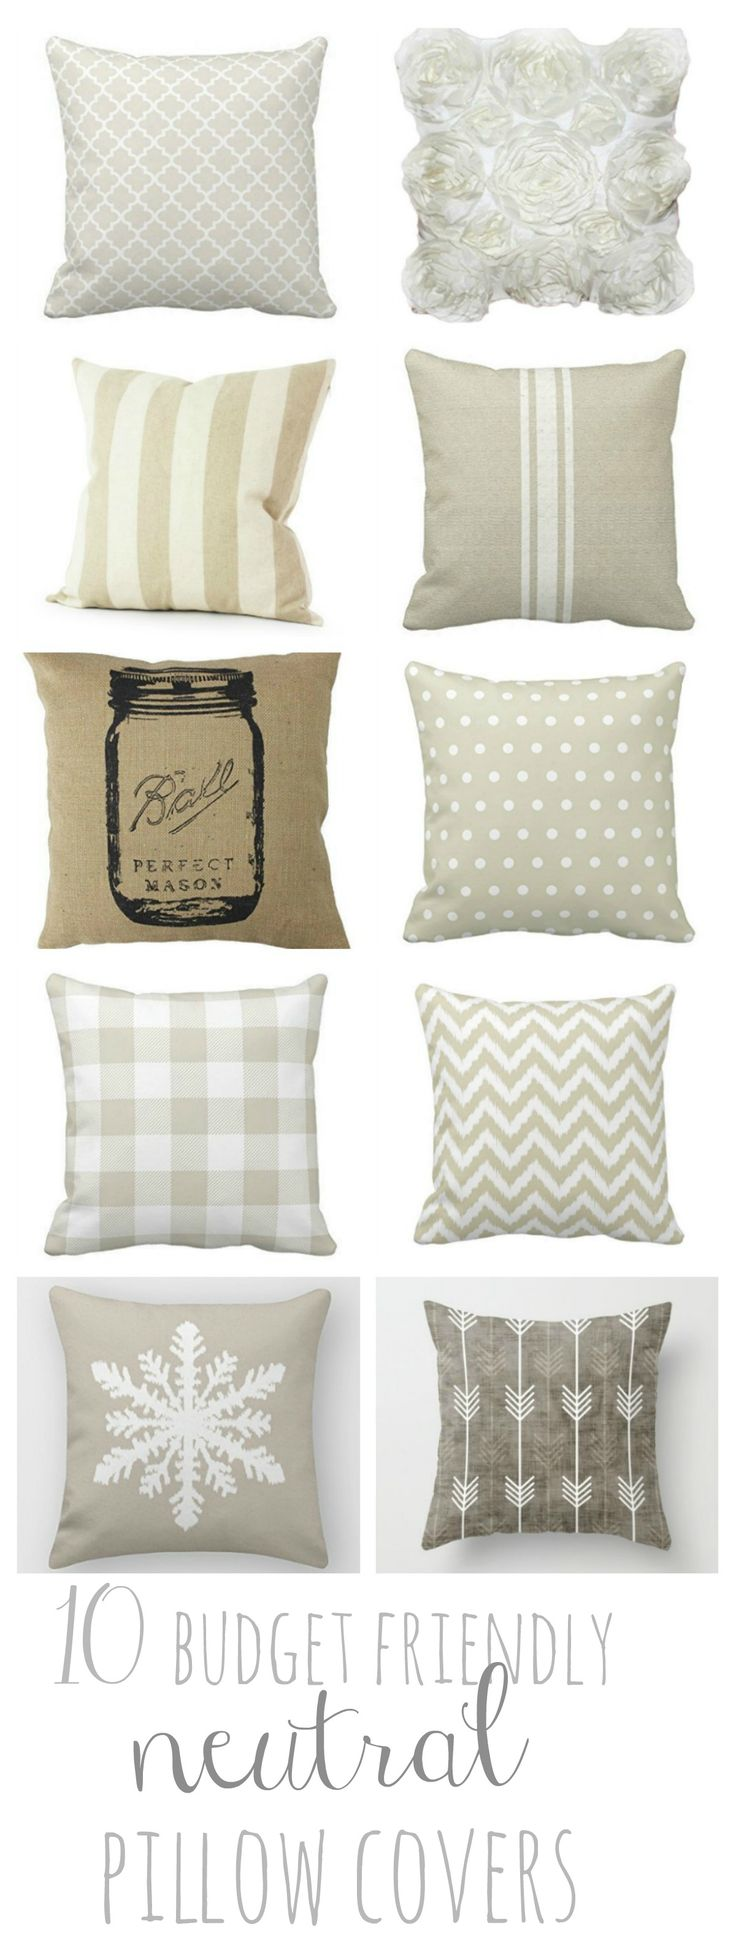 10 Budget Friendly Neutral Pillow Covers to help you transition seasons in your home! All of these are under $10! Winner Winner!